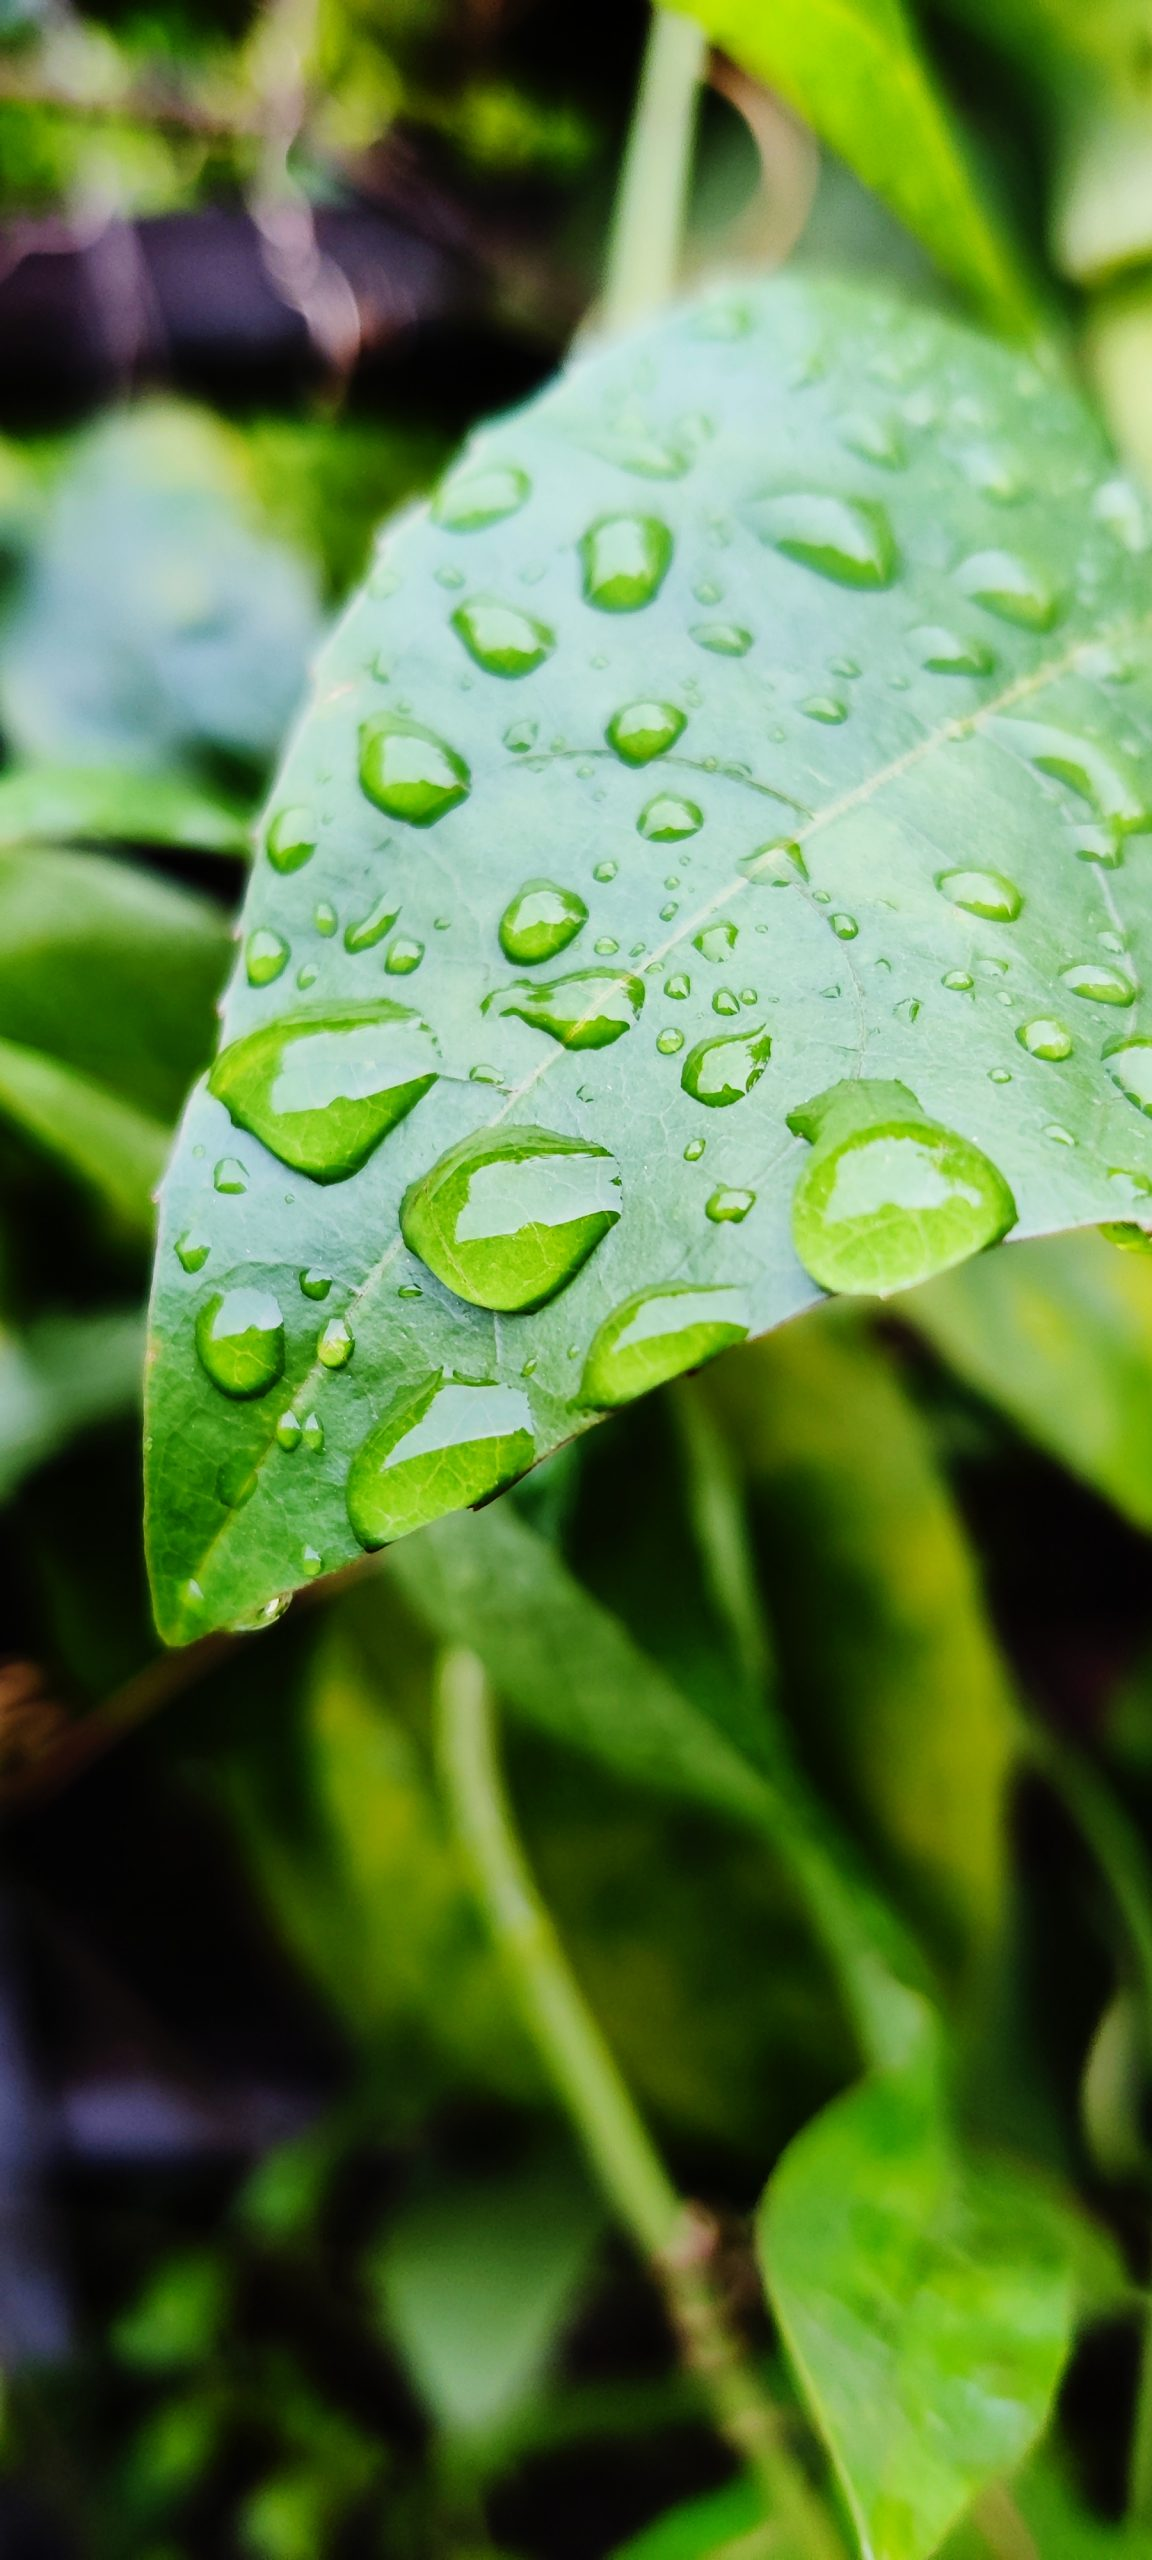 Tiny Waterdrops on leaf